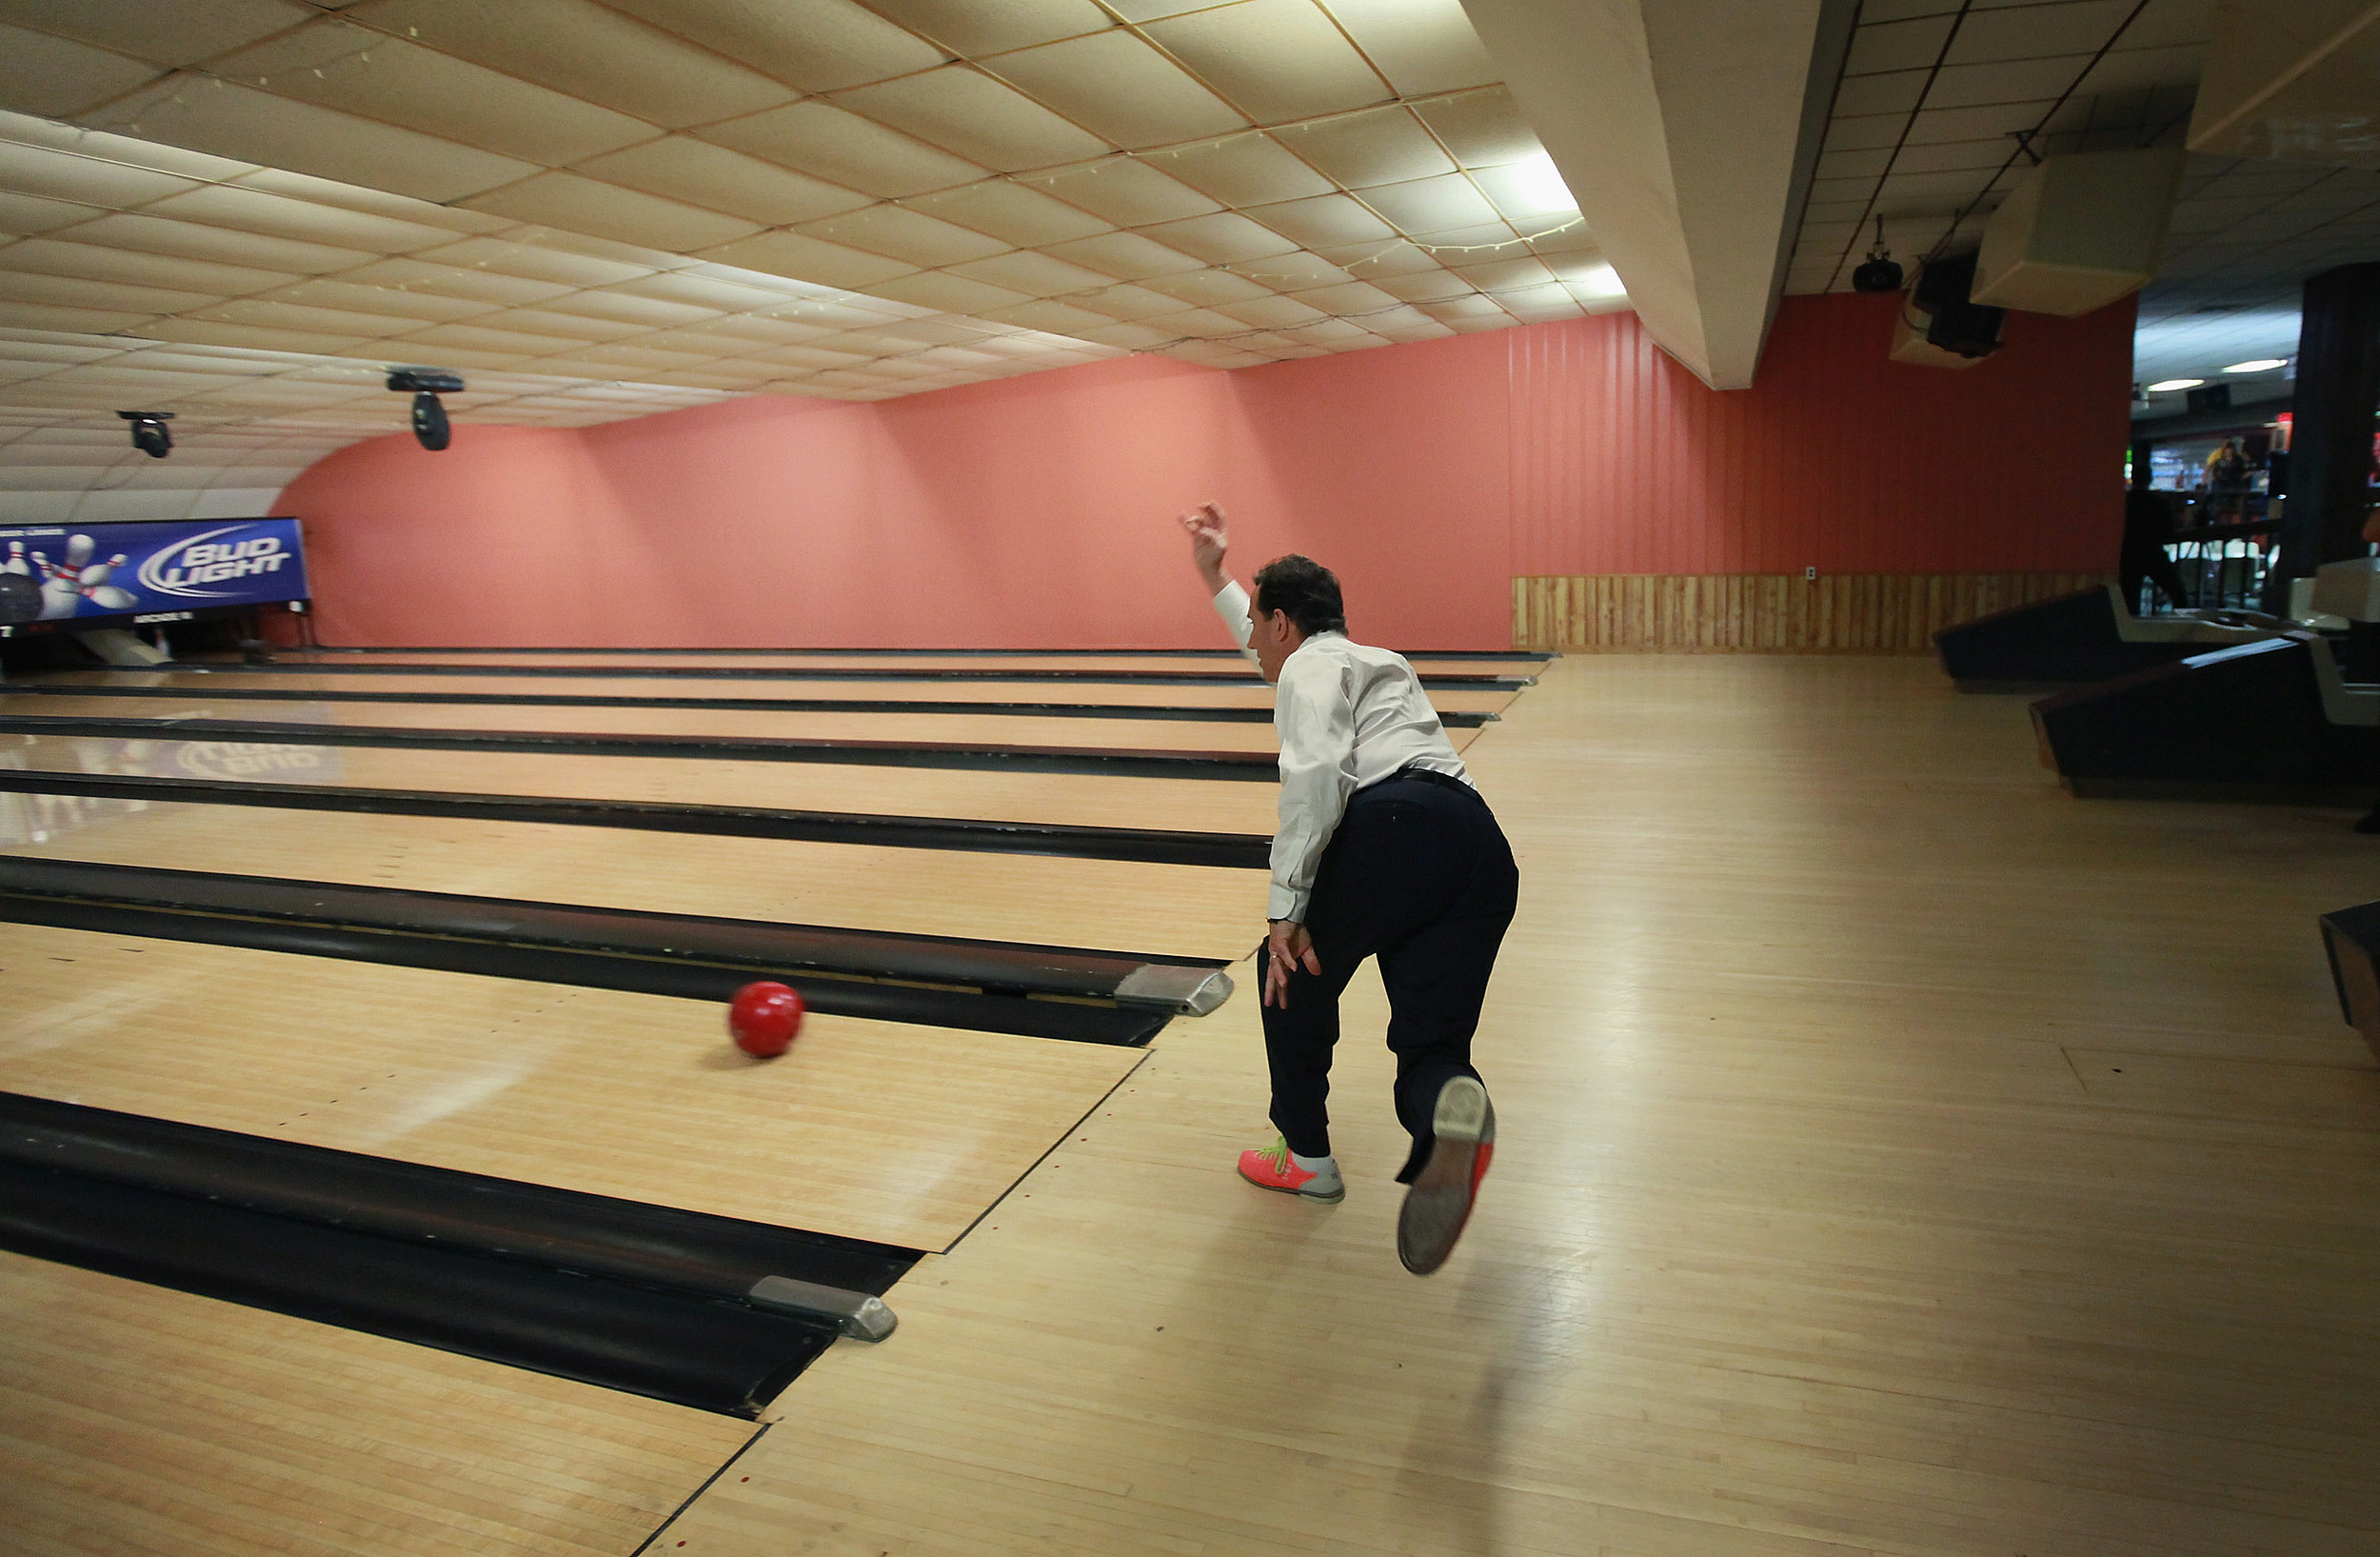 Papp\'s Bowling Alley in Bordentown to close - is bowling a fading sport?